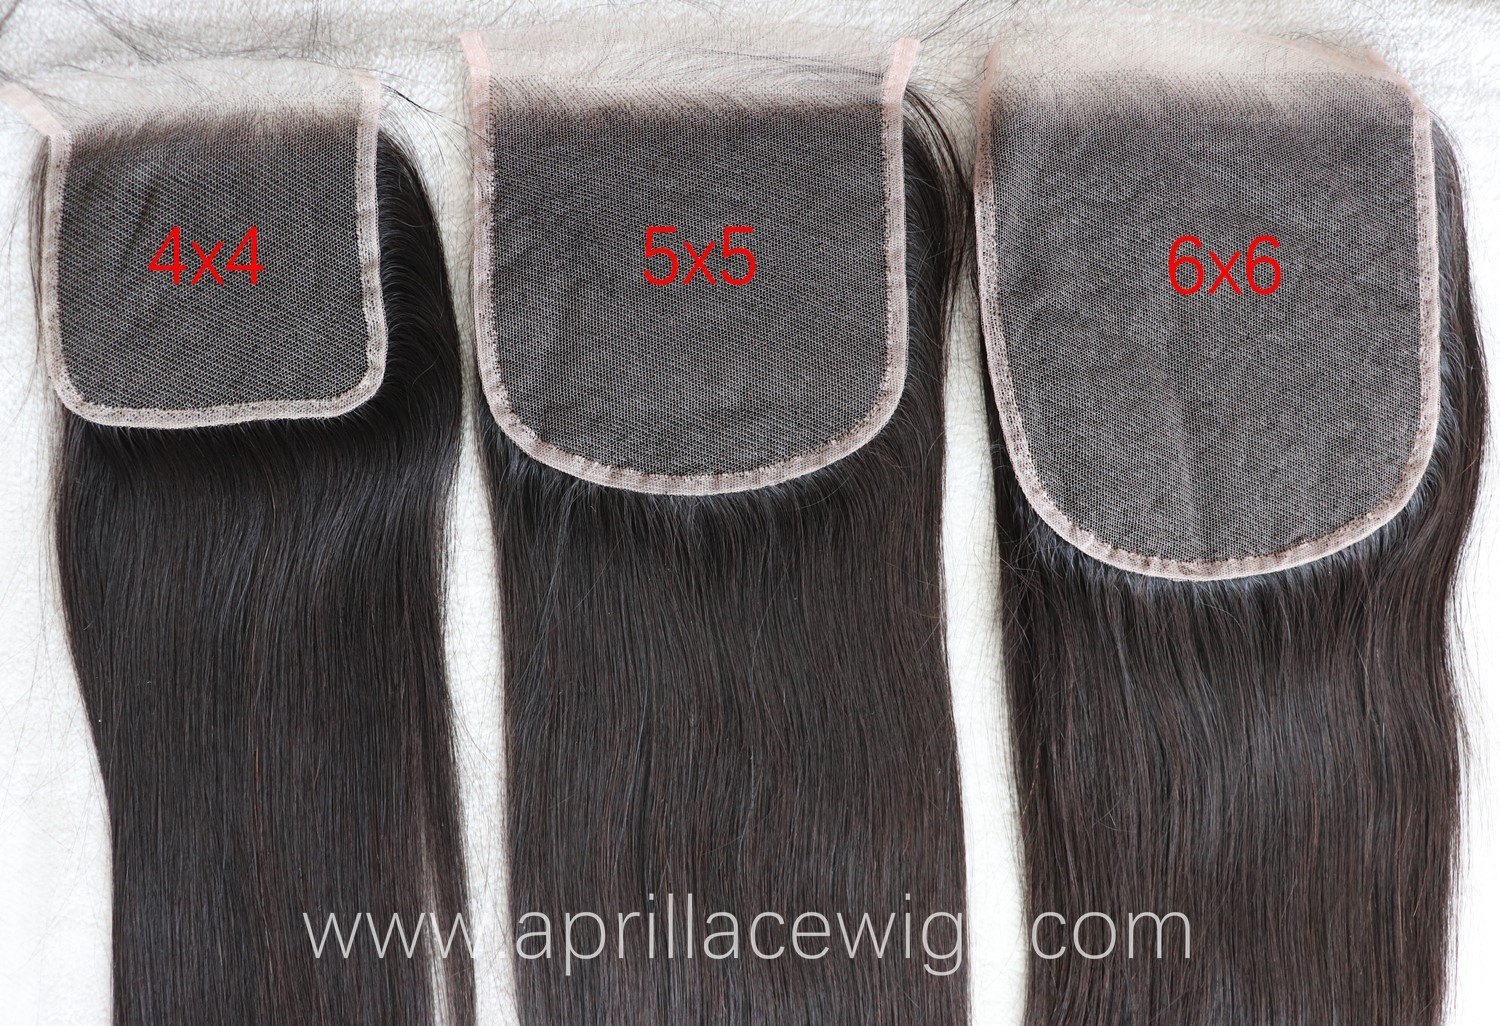 4x4 HD lace closure, 5x5 HD lace closure, 6x6 HD lace closure and lace frontal